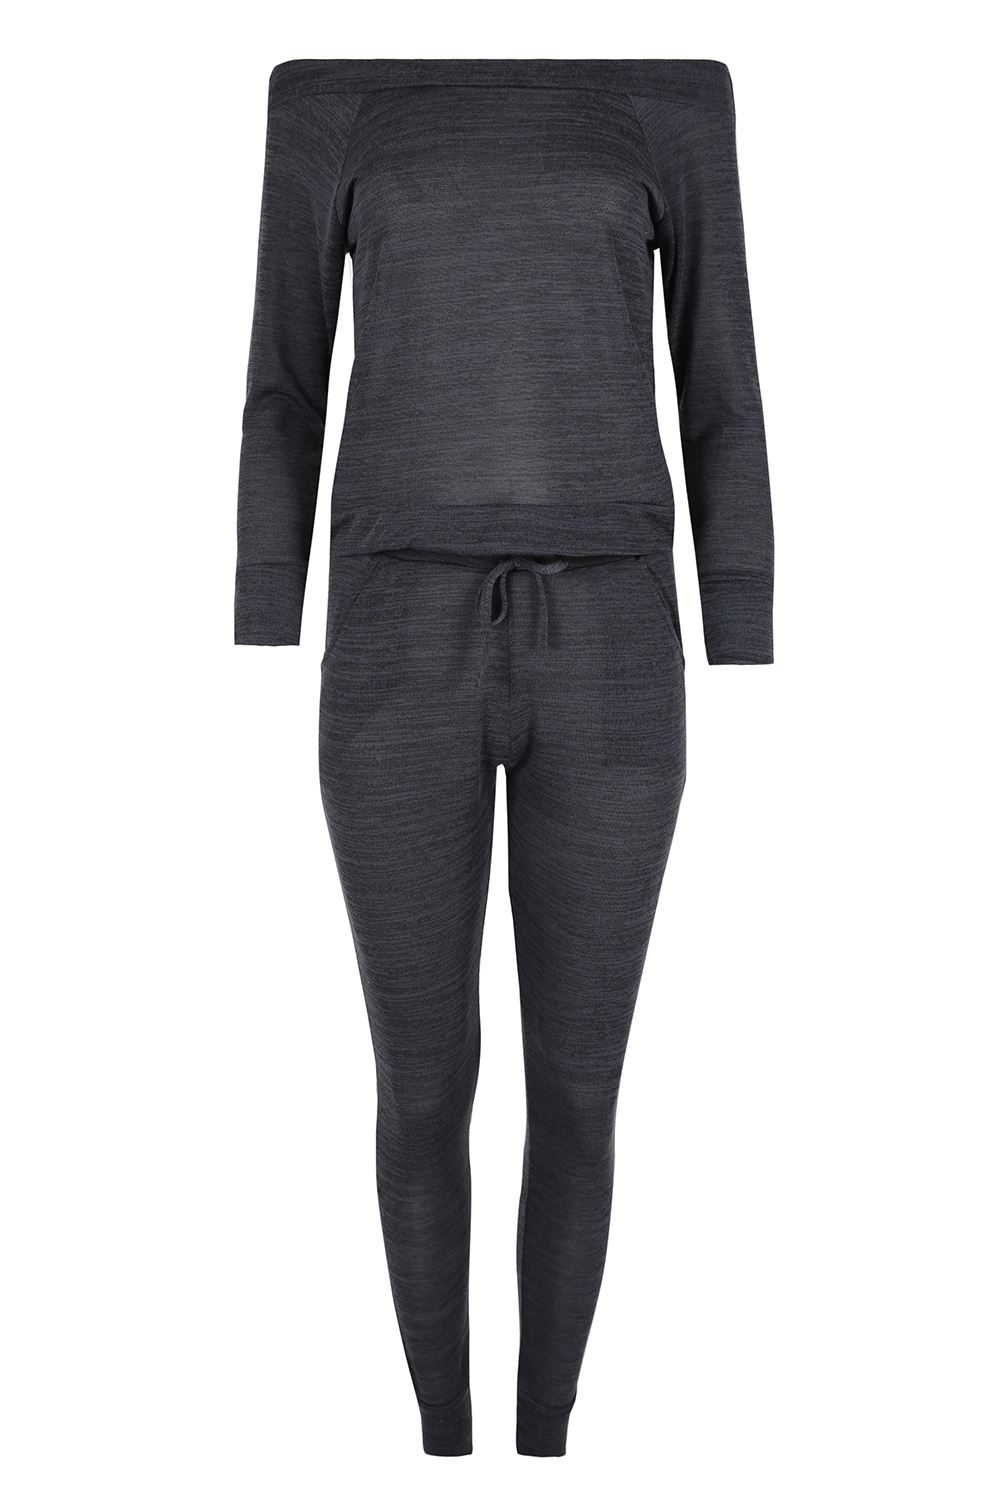 Ladies Marl Top Jog Suit Womens Tracksuit Oversized Off the ...